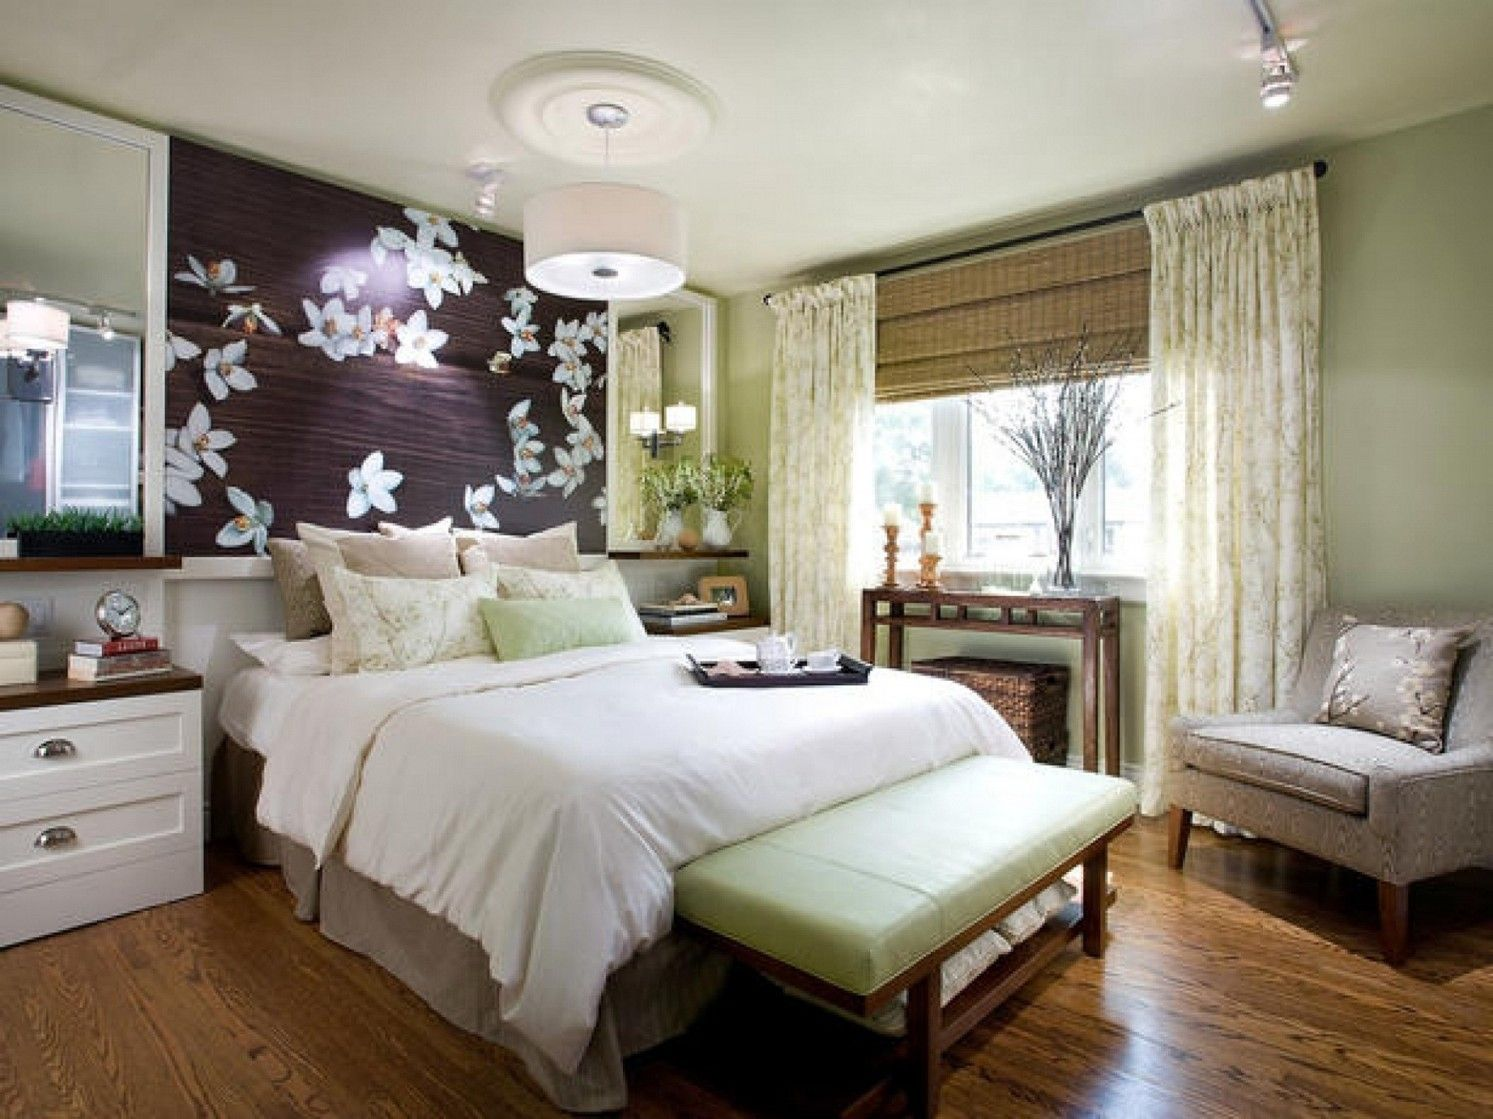 4 Great Tips For Small Bedrooms Decoration, Lighting And Mirrors   Bedroom  Decorating Ideas And Designs